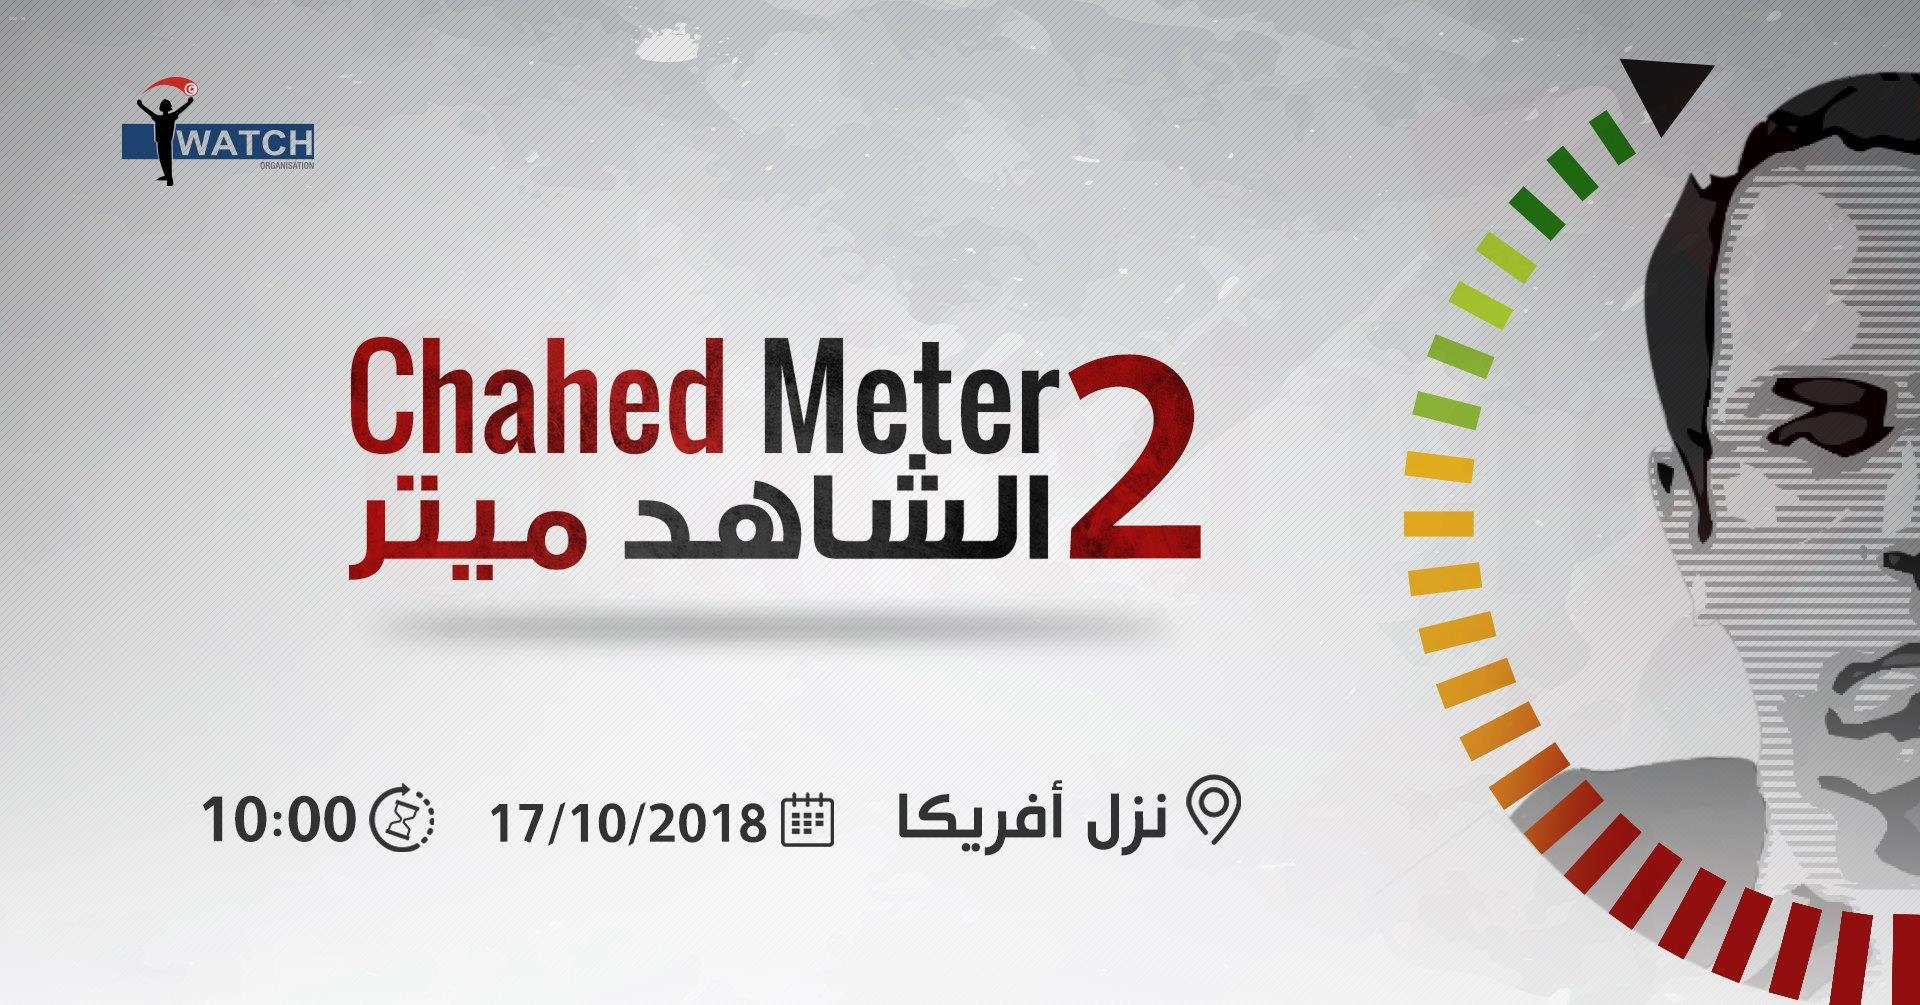 Chahed Meter 2